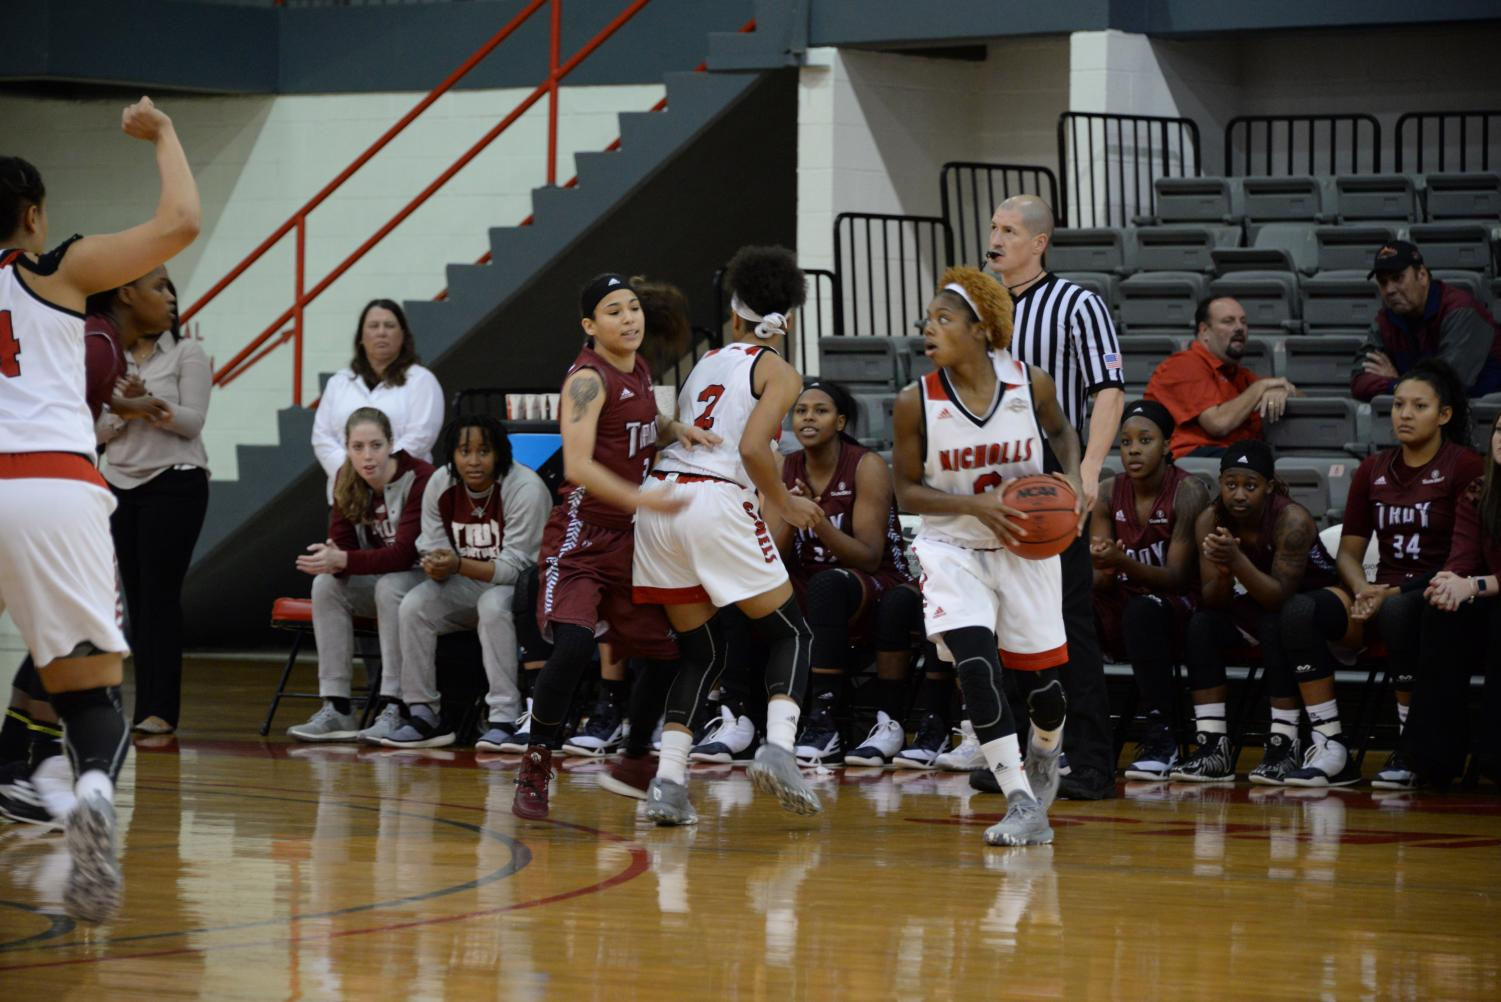 Emani White #0 a senior from New Orleans runs with the ball during the Troy Vs. Nicholls basketball game that took place on December 14, 2016 in Stopher Gym.